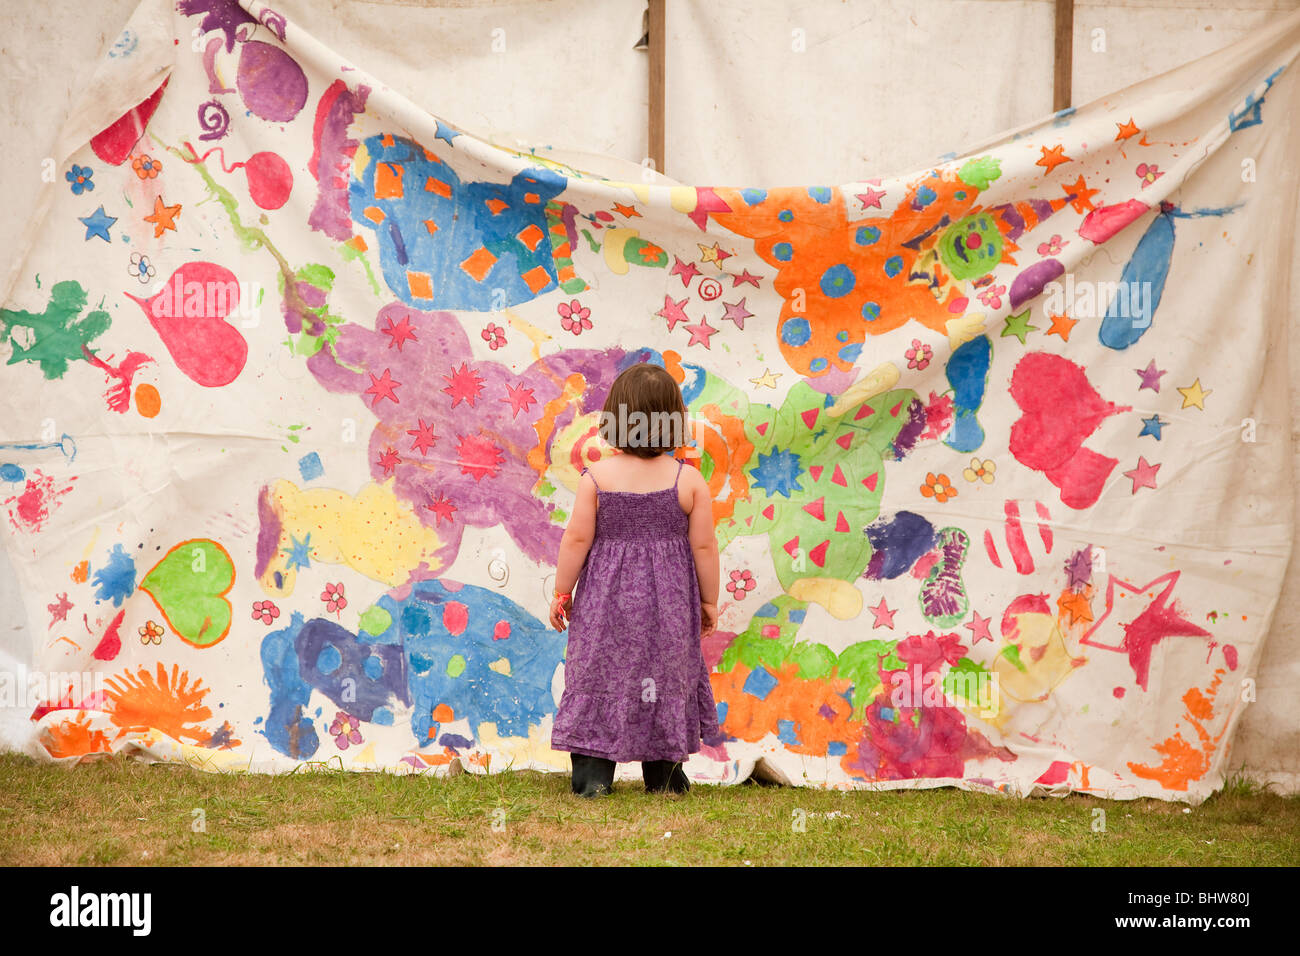 A toddler admires artwork at the Latitude Festival 2009. Children can be art critics too. - Stock Image